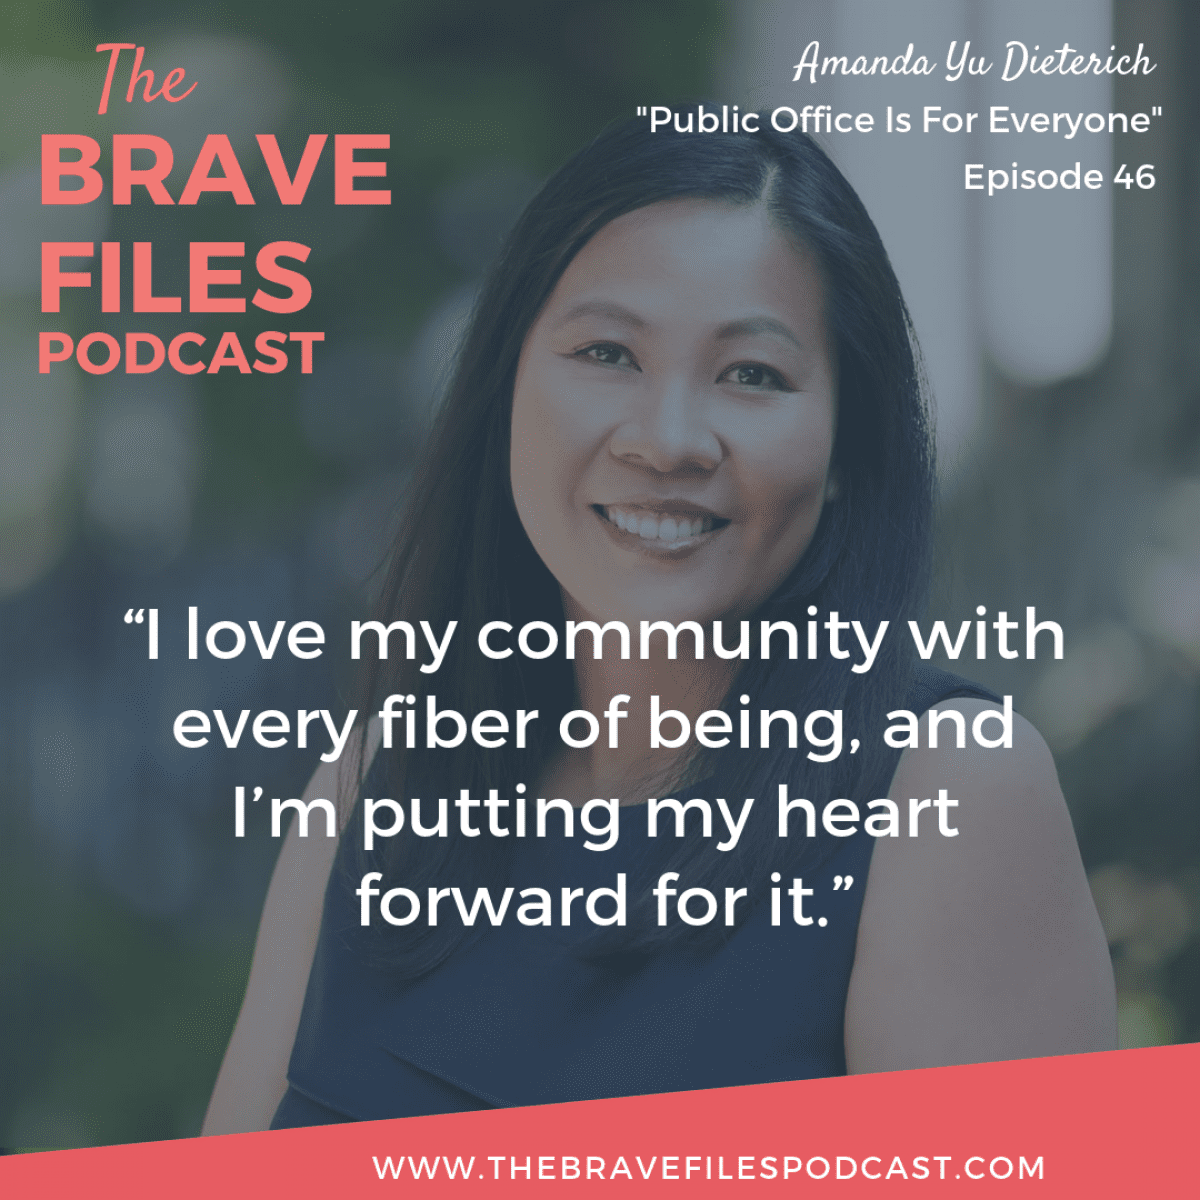 Amanda Yu Dietrich loves her community and her family. That's why she's running for office at the local level. The Brave Files Podcast.